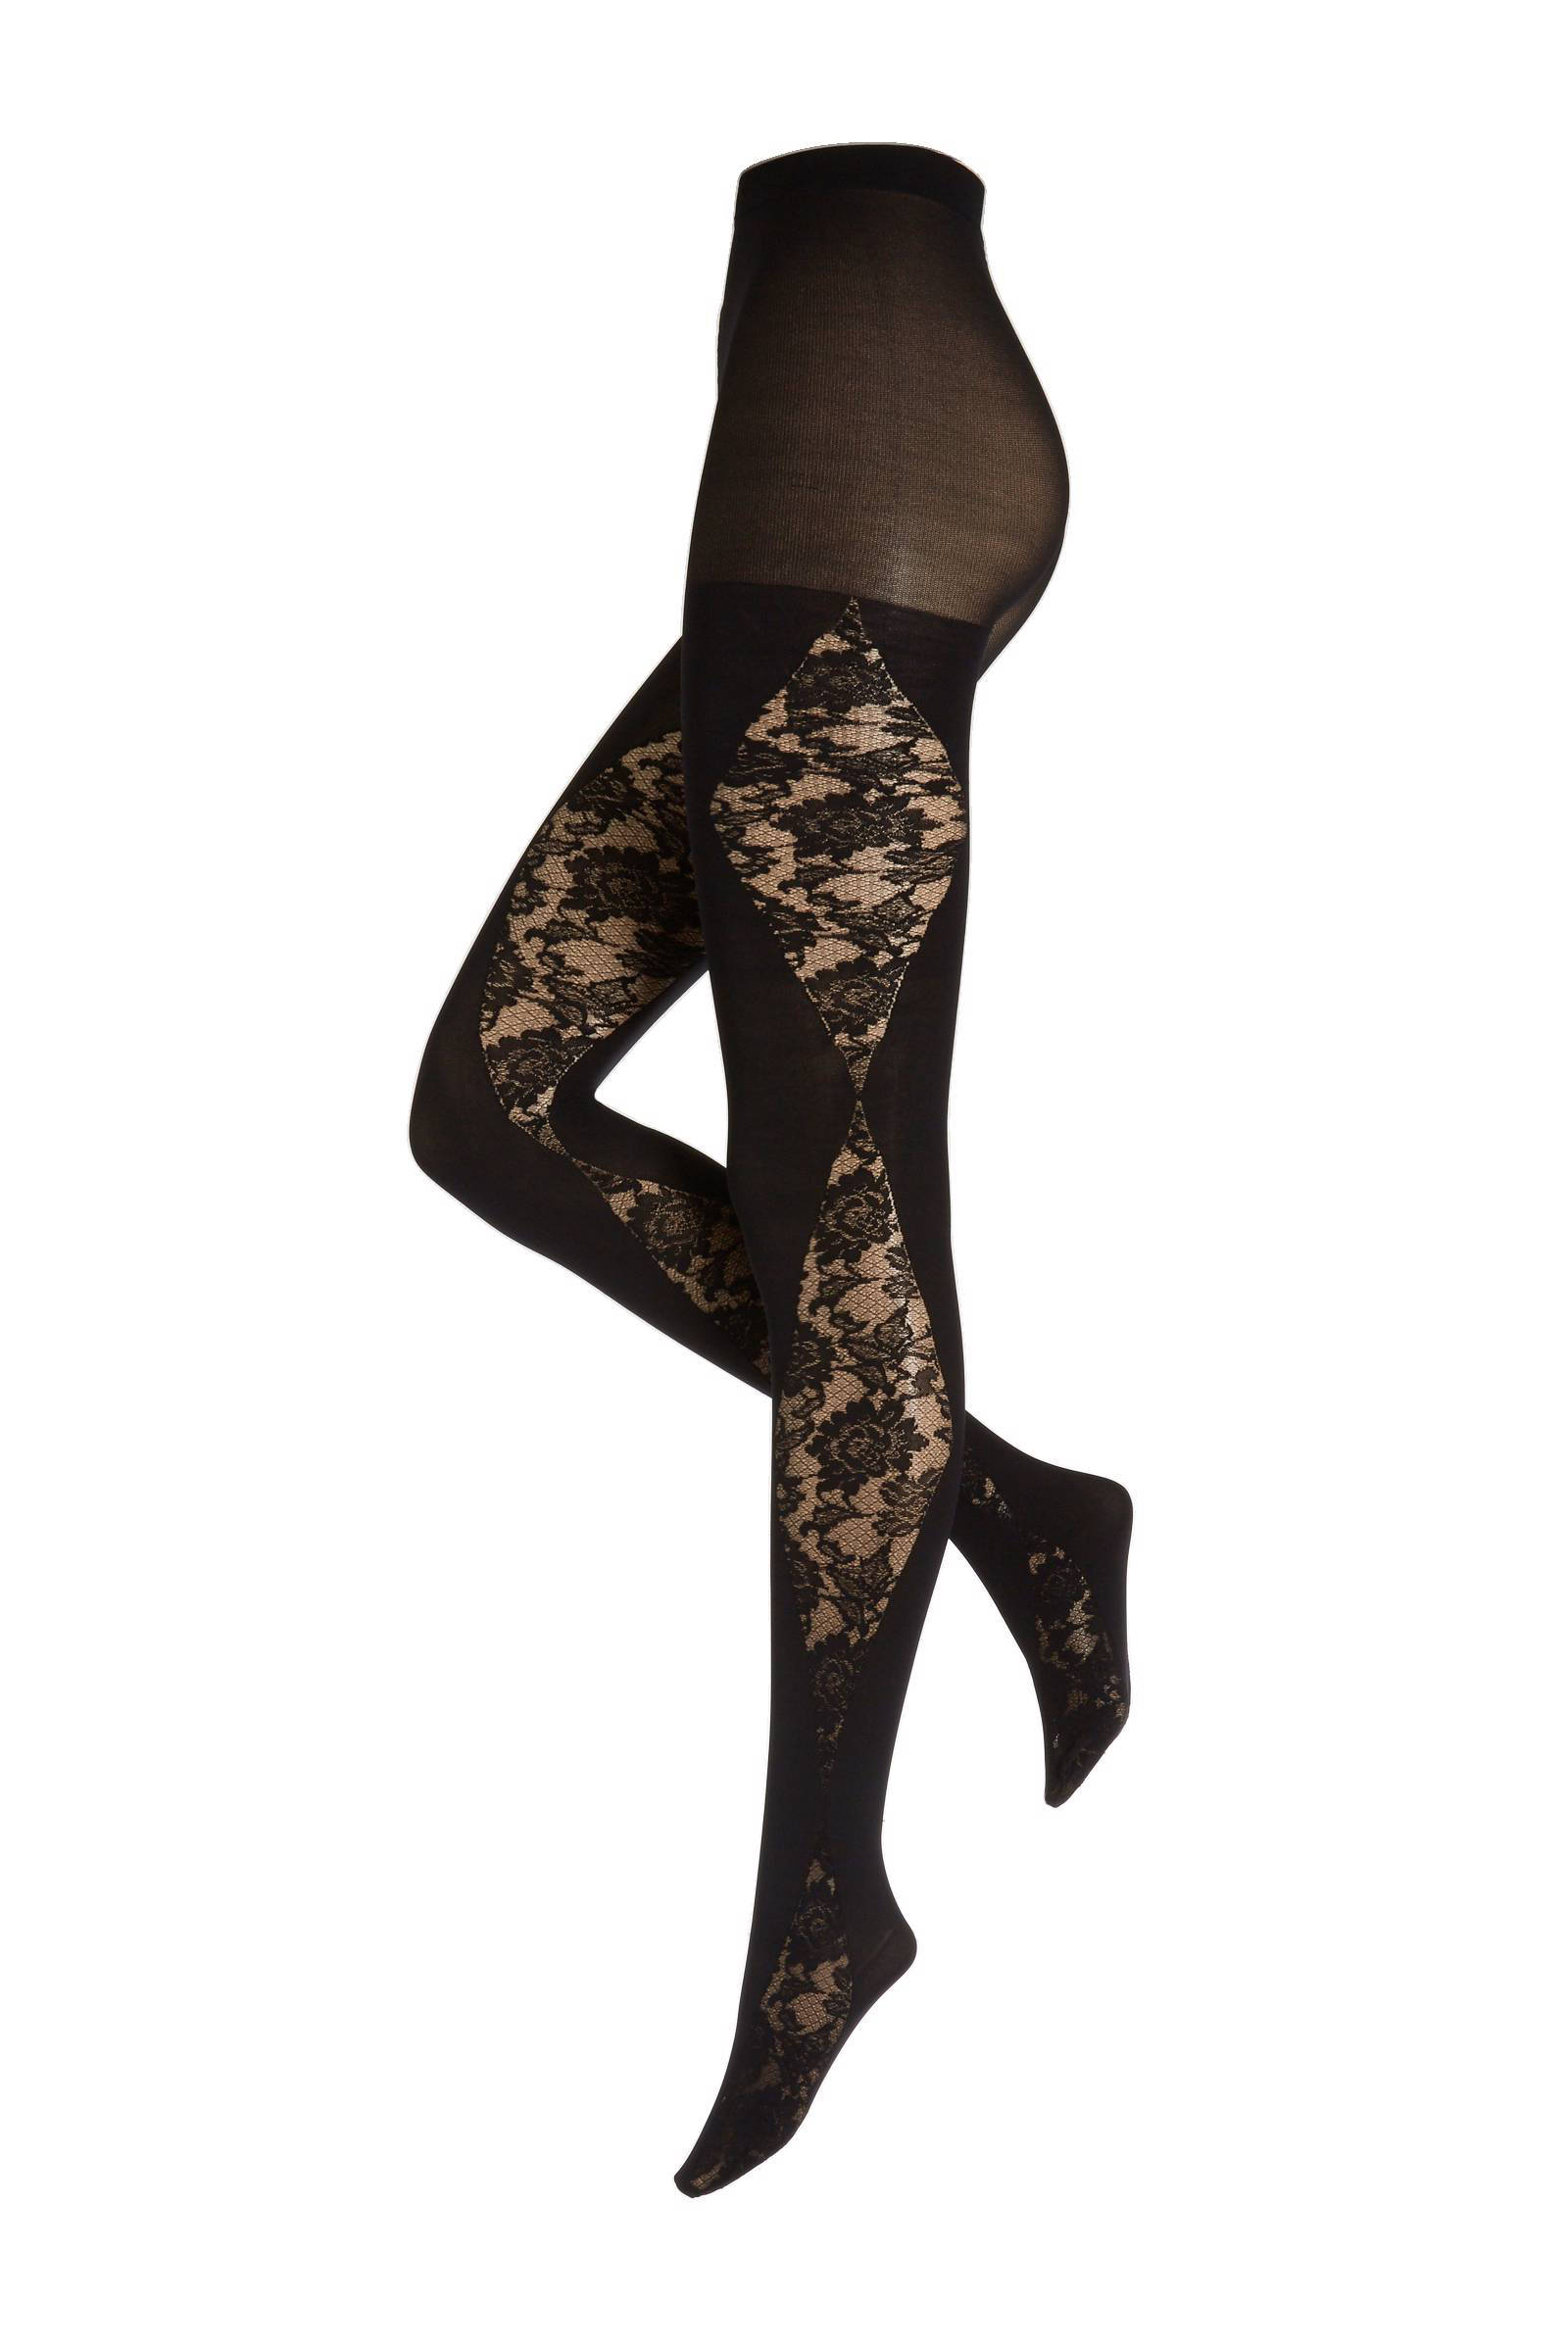 Pamela Mann Gisy - Lace Panel Tights panty 60 denier +size